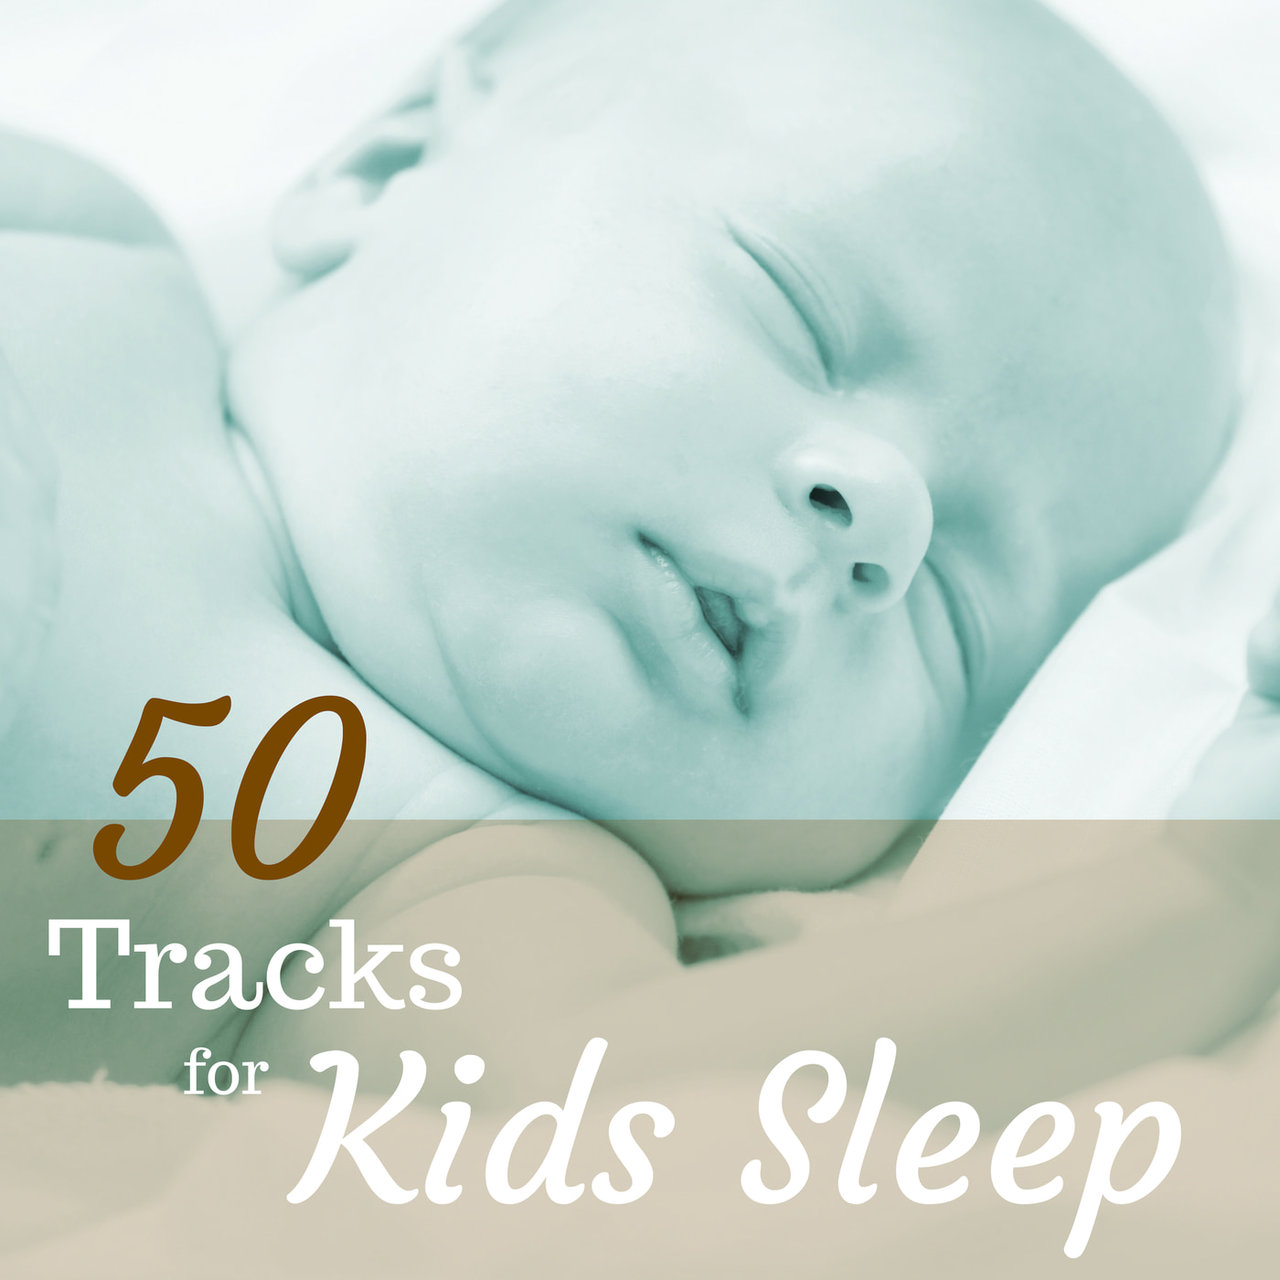 Sleep Music For Kids Listen To 50 Tracks For Kids Sleep Best Music For Newborn Naps